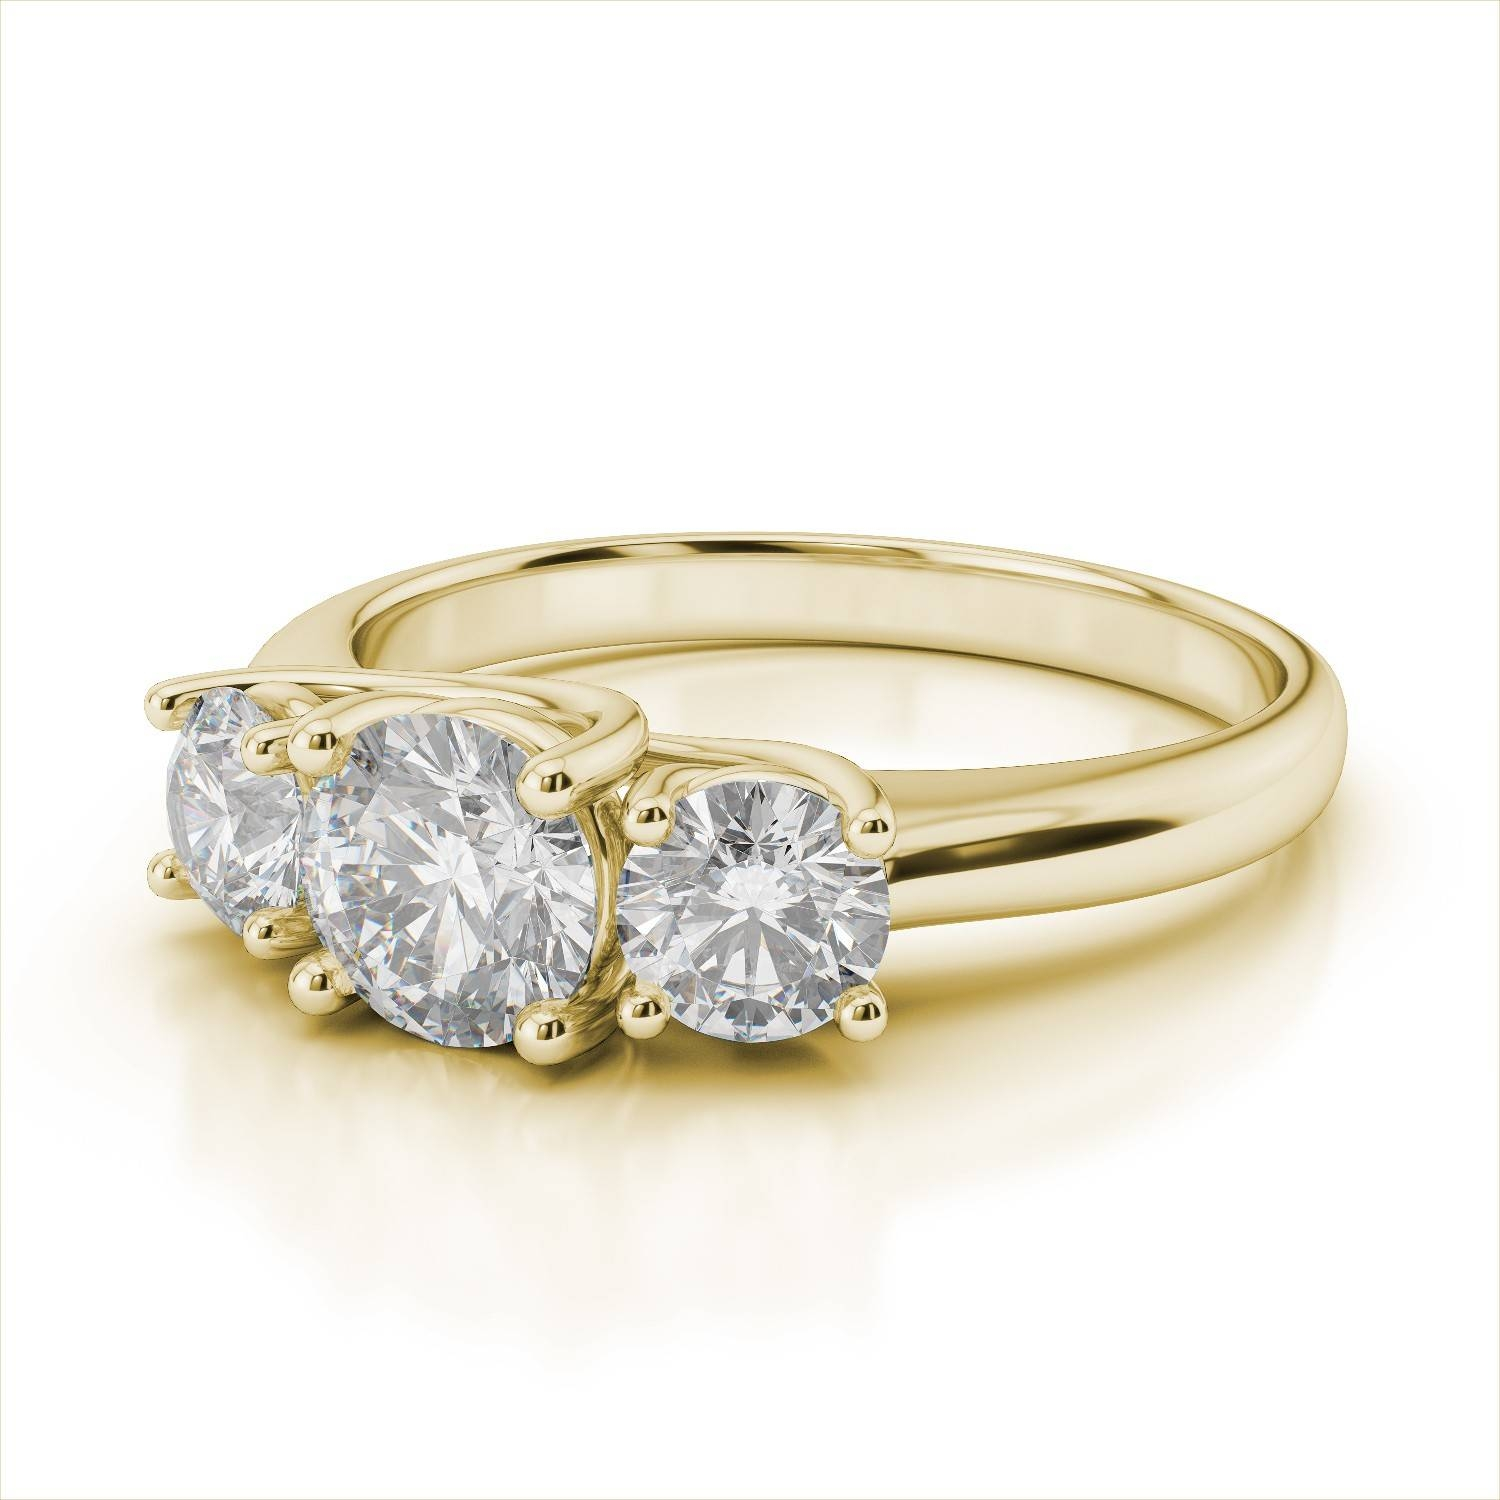 Gold 3 Stone Engagement Rings | Wedding, Promise, Diamond For Most Popular 3 Diamond Anniversary Rings (View 7 of 25)